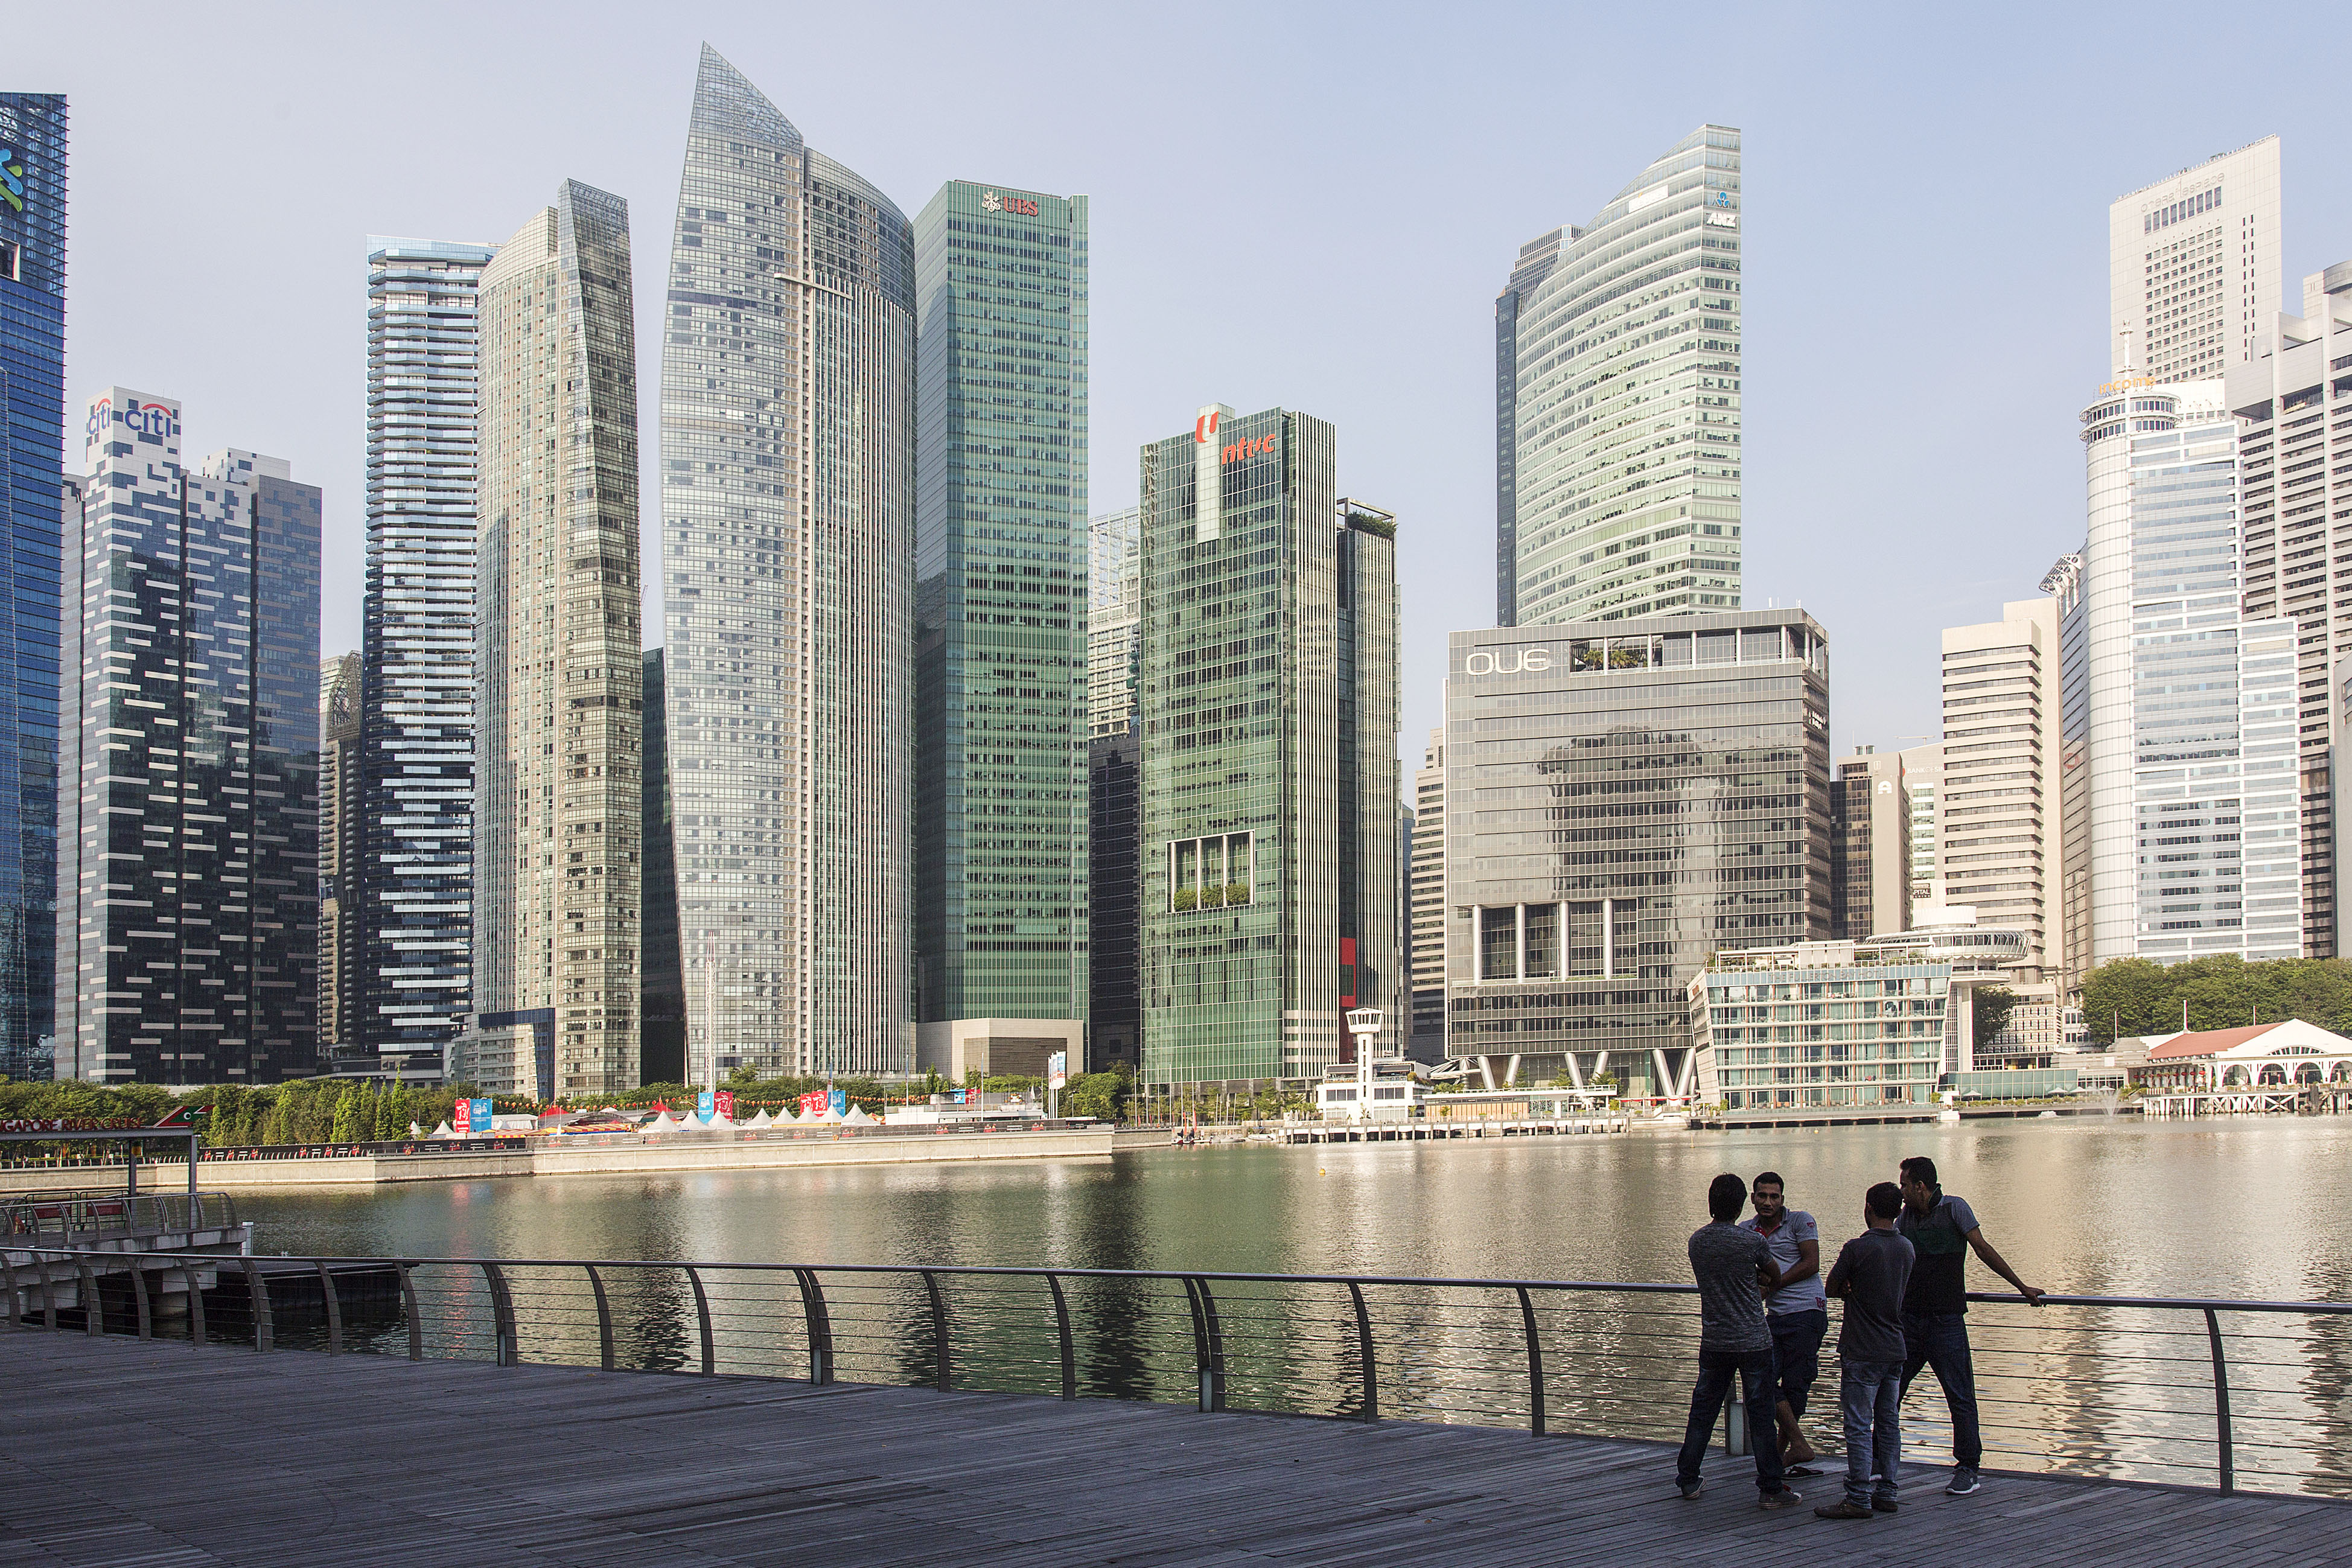 City Views of Singapore Ahead of Finance Minister Heng Swee Keat's Budget Speech